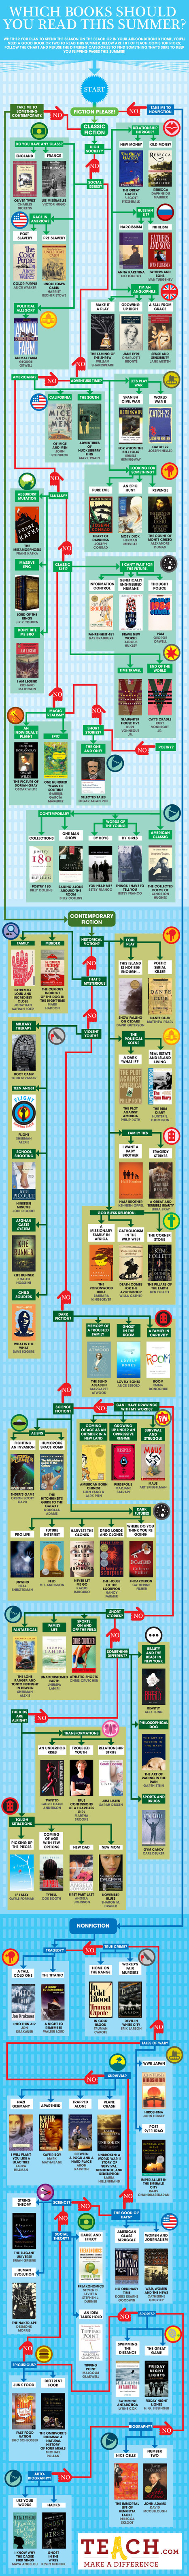 Summer Reading Flowchart: What Should You Read On Your Break? | Parenting 21st Century Kids | Scoop.it